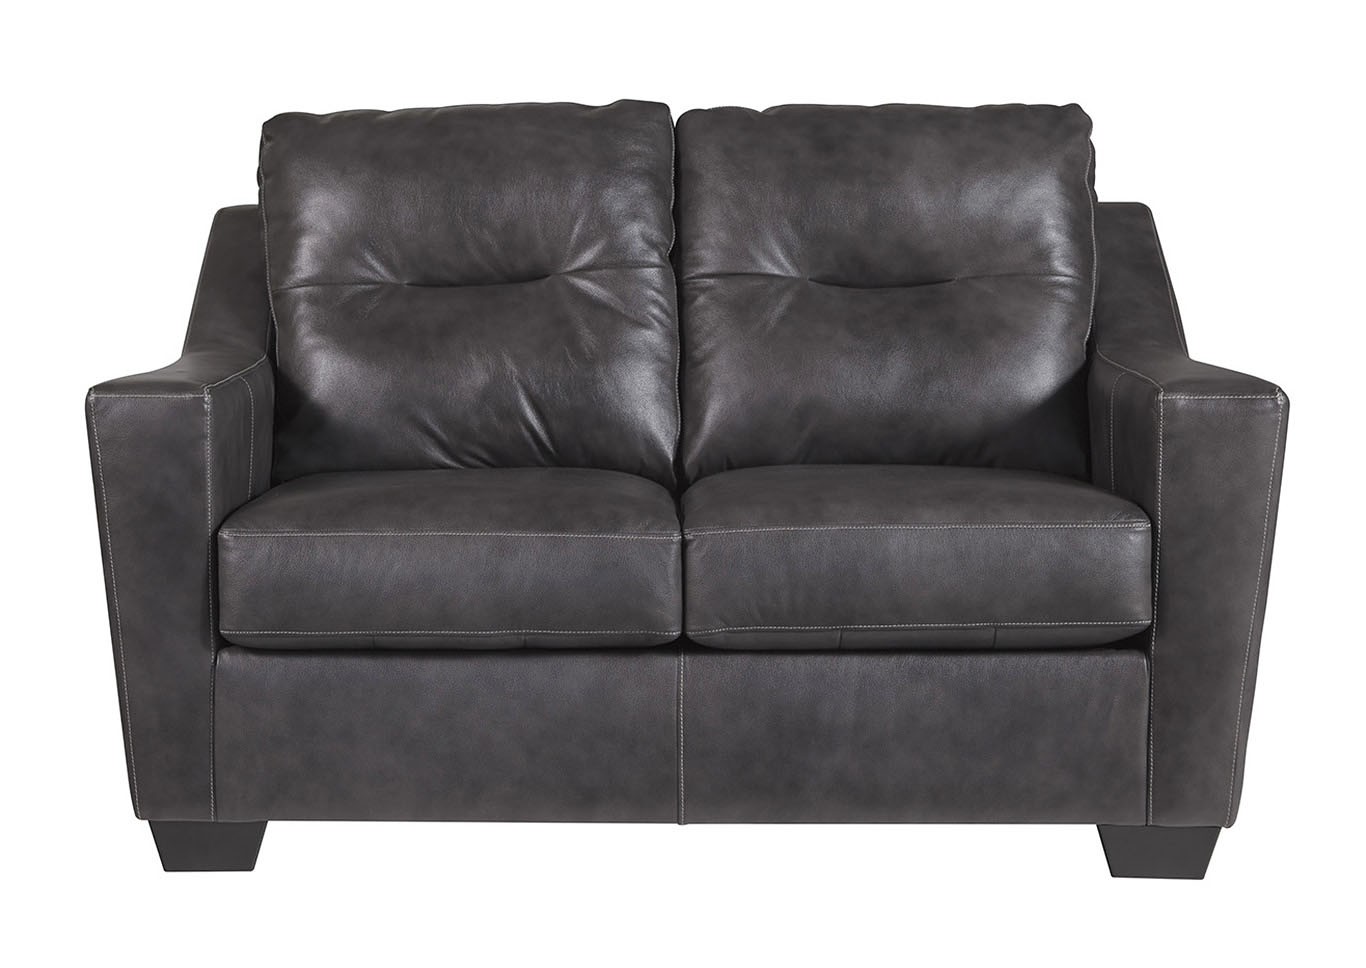 Kensbridge Charcoal Loveseat,Signature Design By Ashley